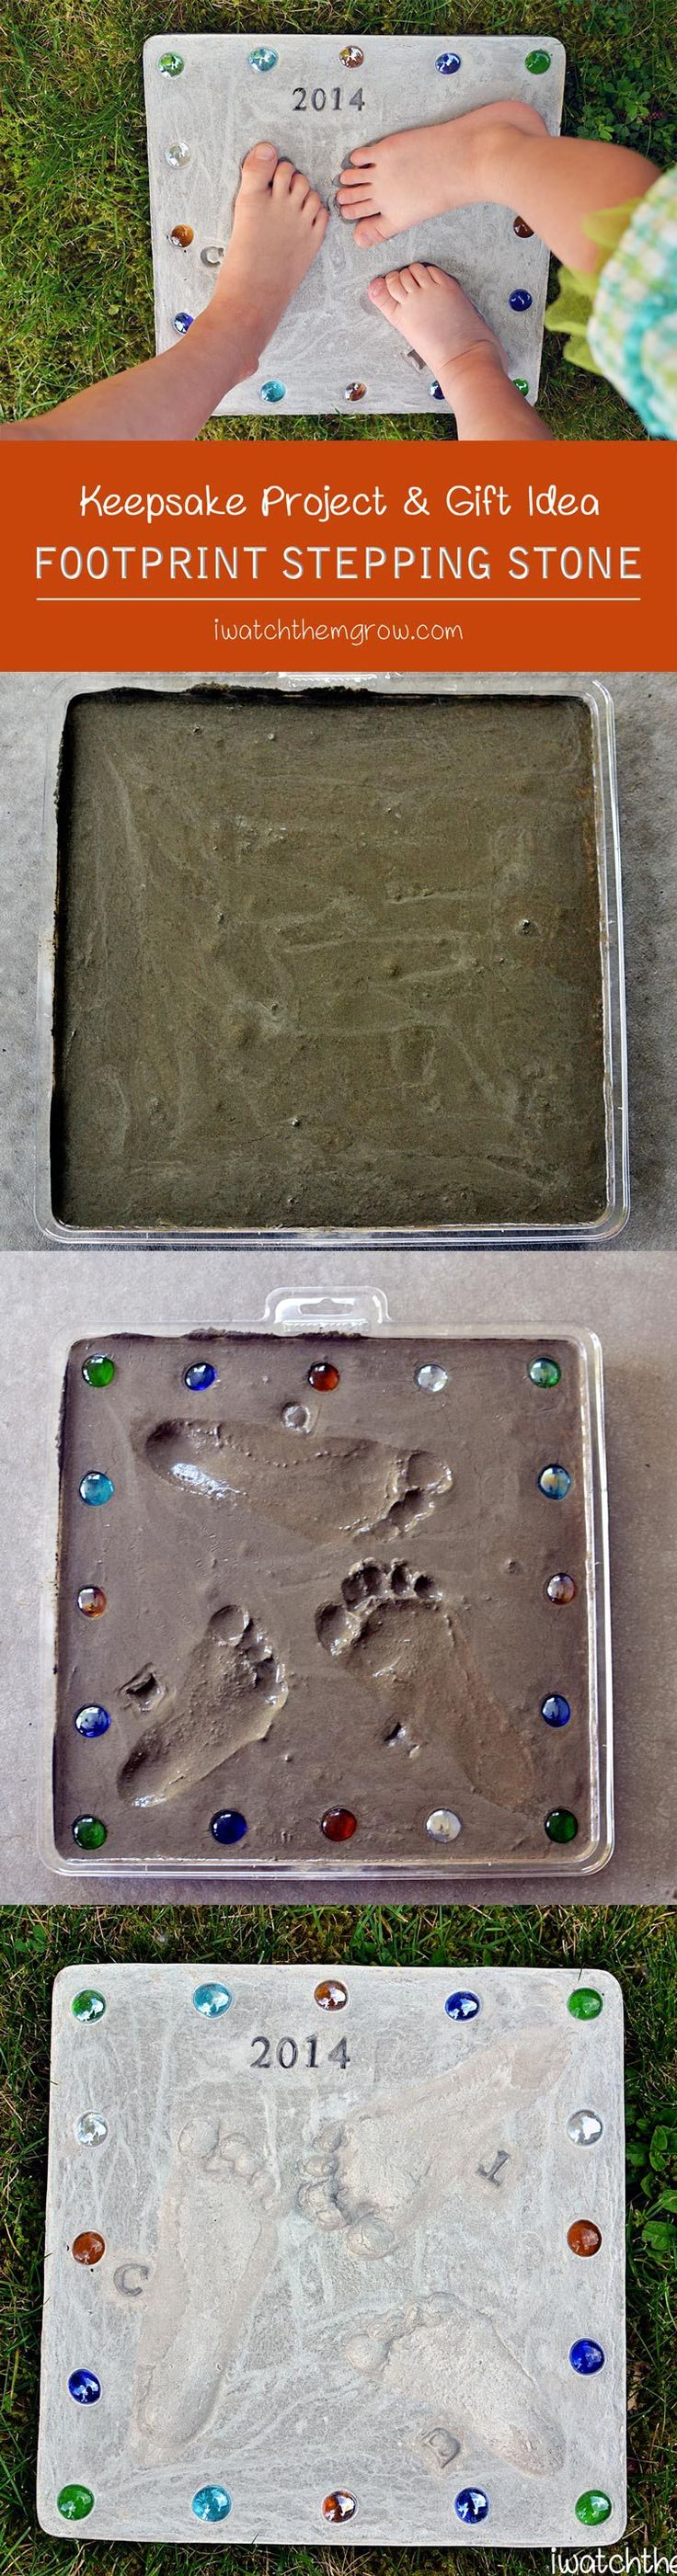 This DIY footprint stepping stone is a perfect keepsake for the garden! Makes a really cute gift for grandparents and Mother's Day or Father's Day!